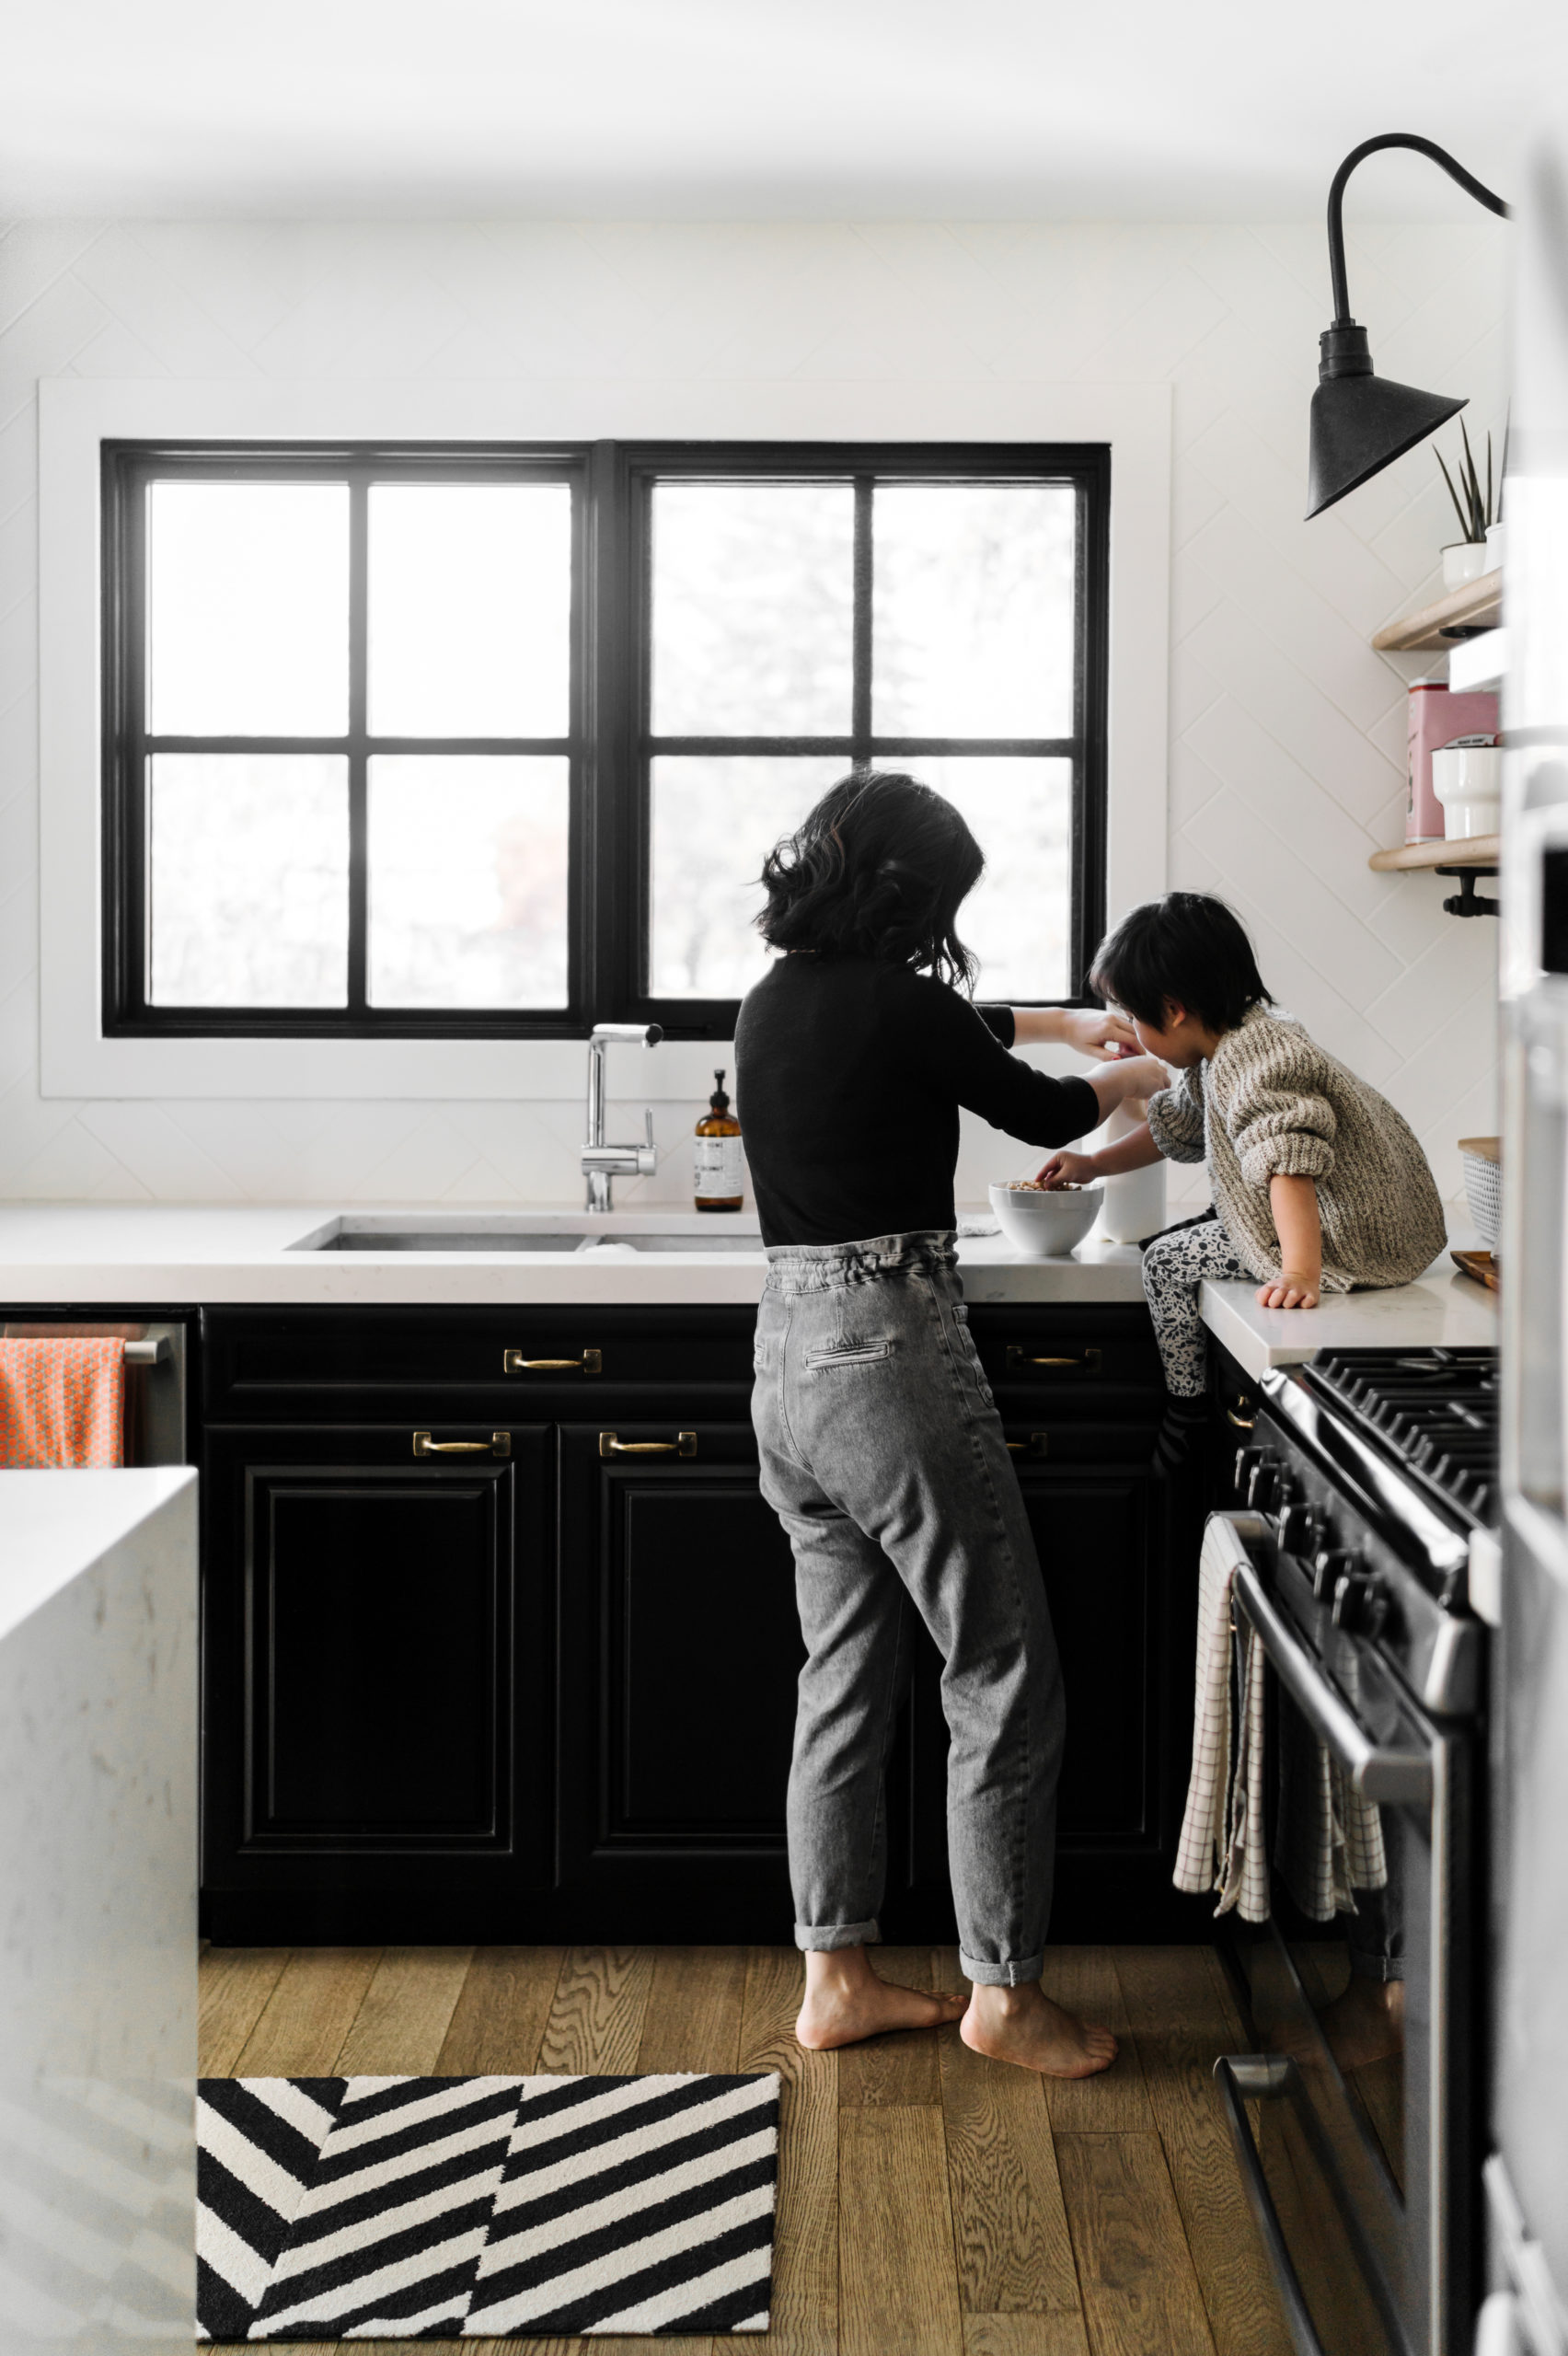 mom in kitchen with son on counter | healthy snacking during a pandemic